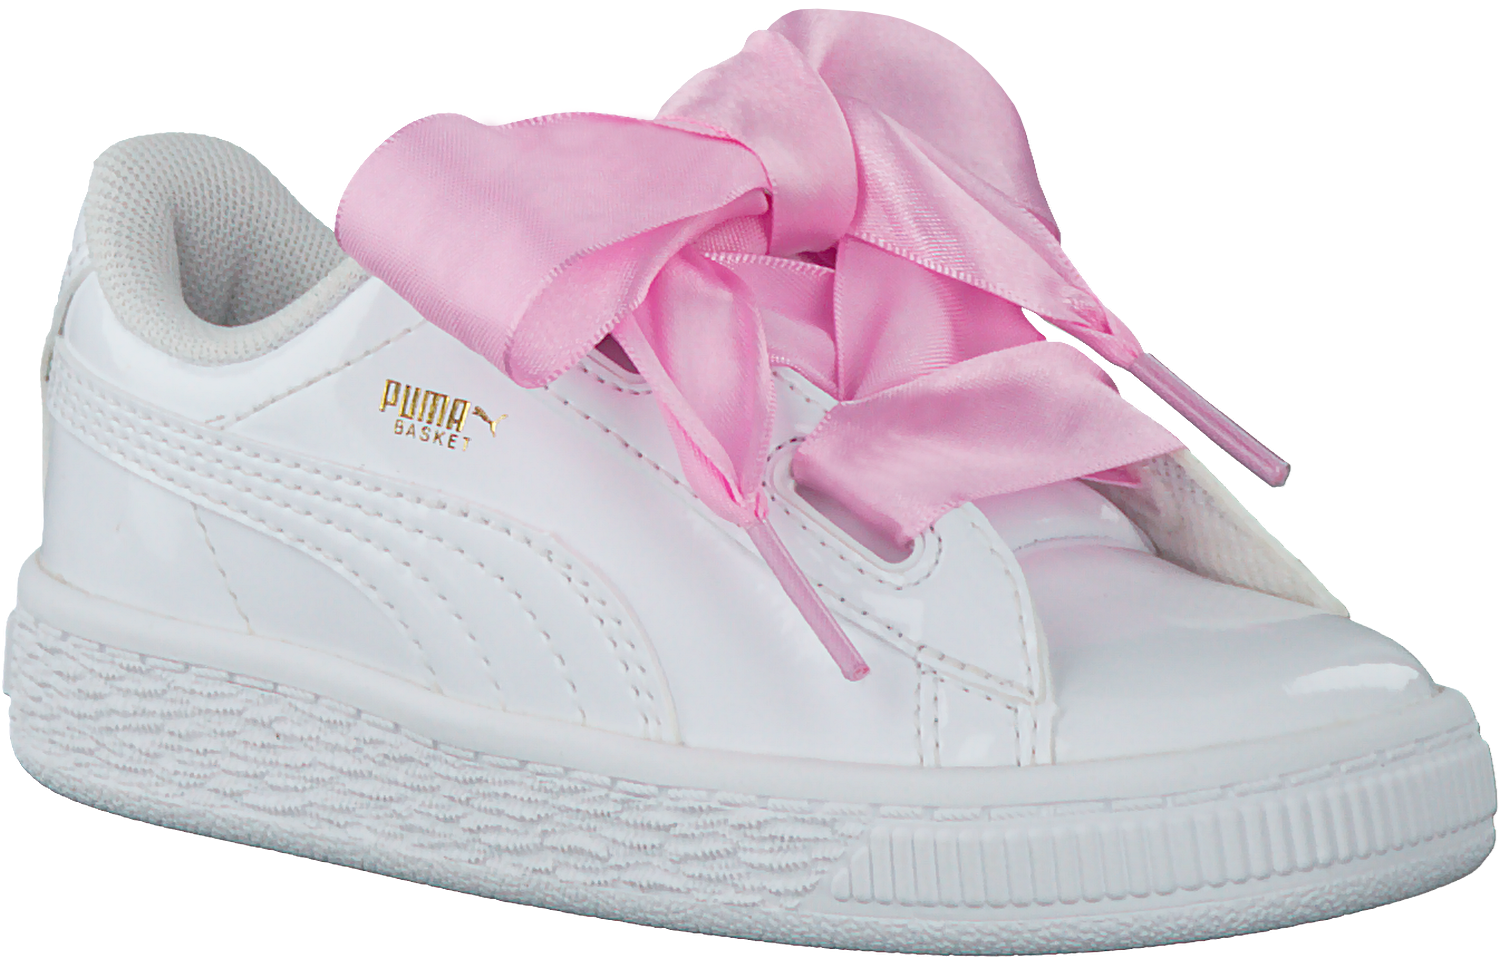 79ae36c1f82 Witte PUMA Sneakers BASKET HEART PATENT KIDS - large. Next